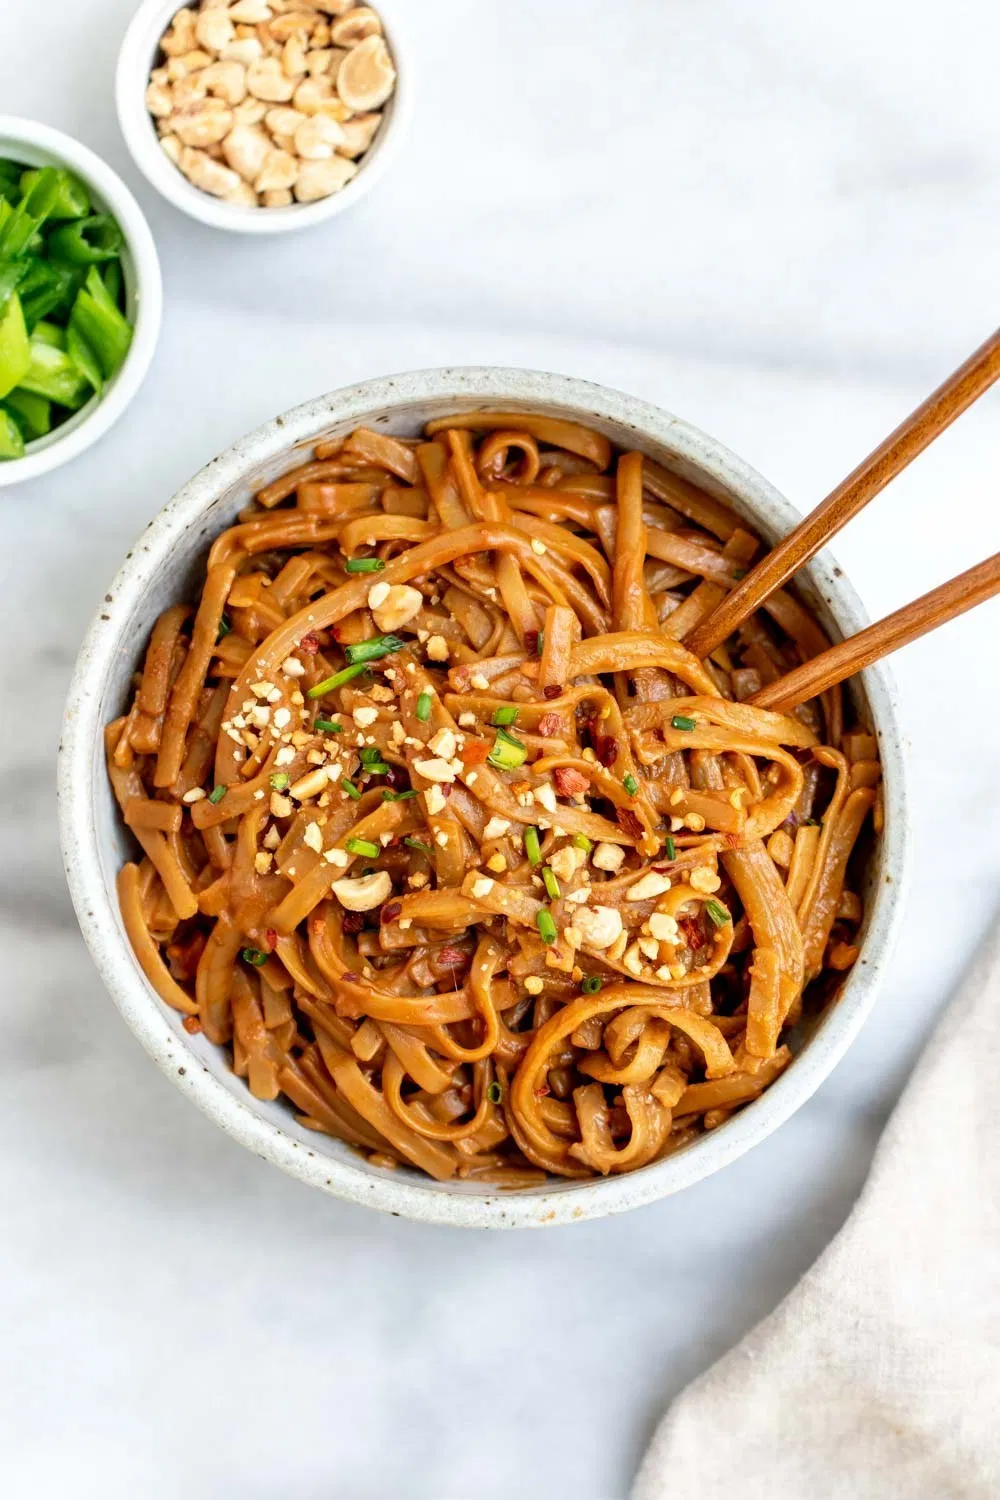 Photo of 15 Minute Spicy Peanut Butter Noodles | Eat With Clarity